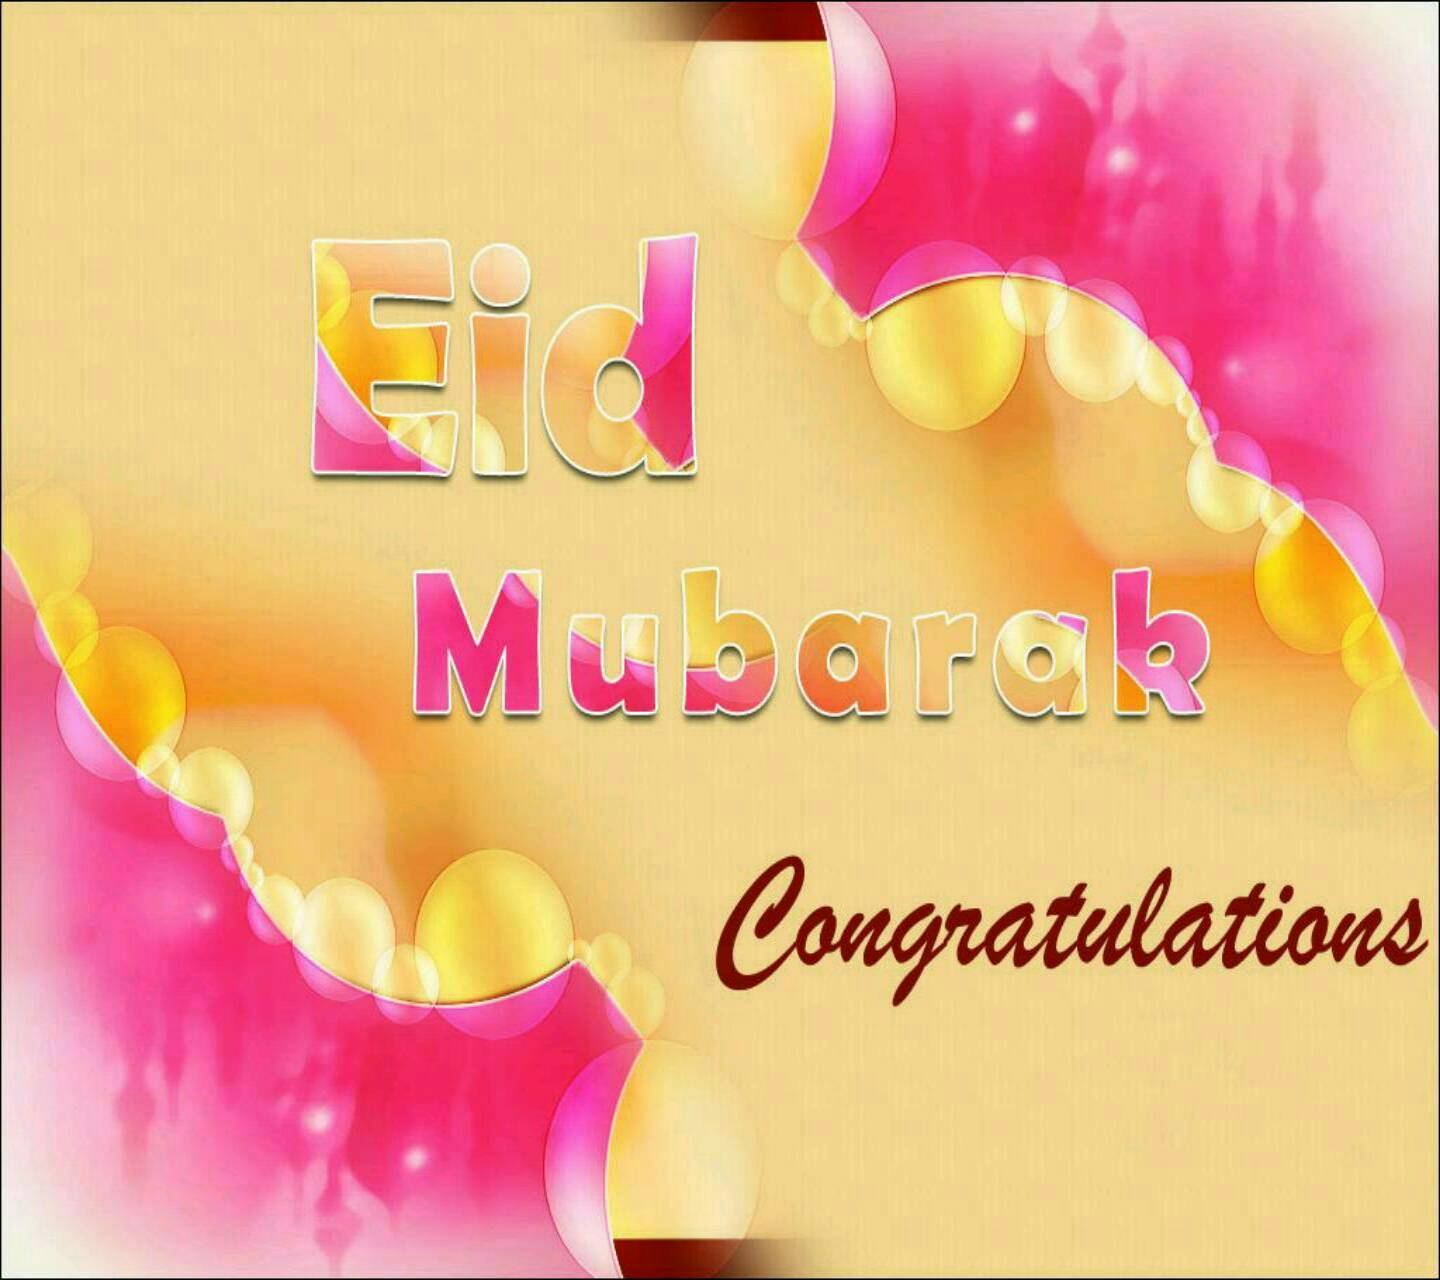 Happy Eid wish